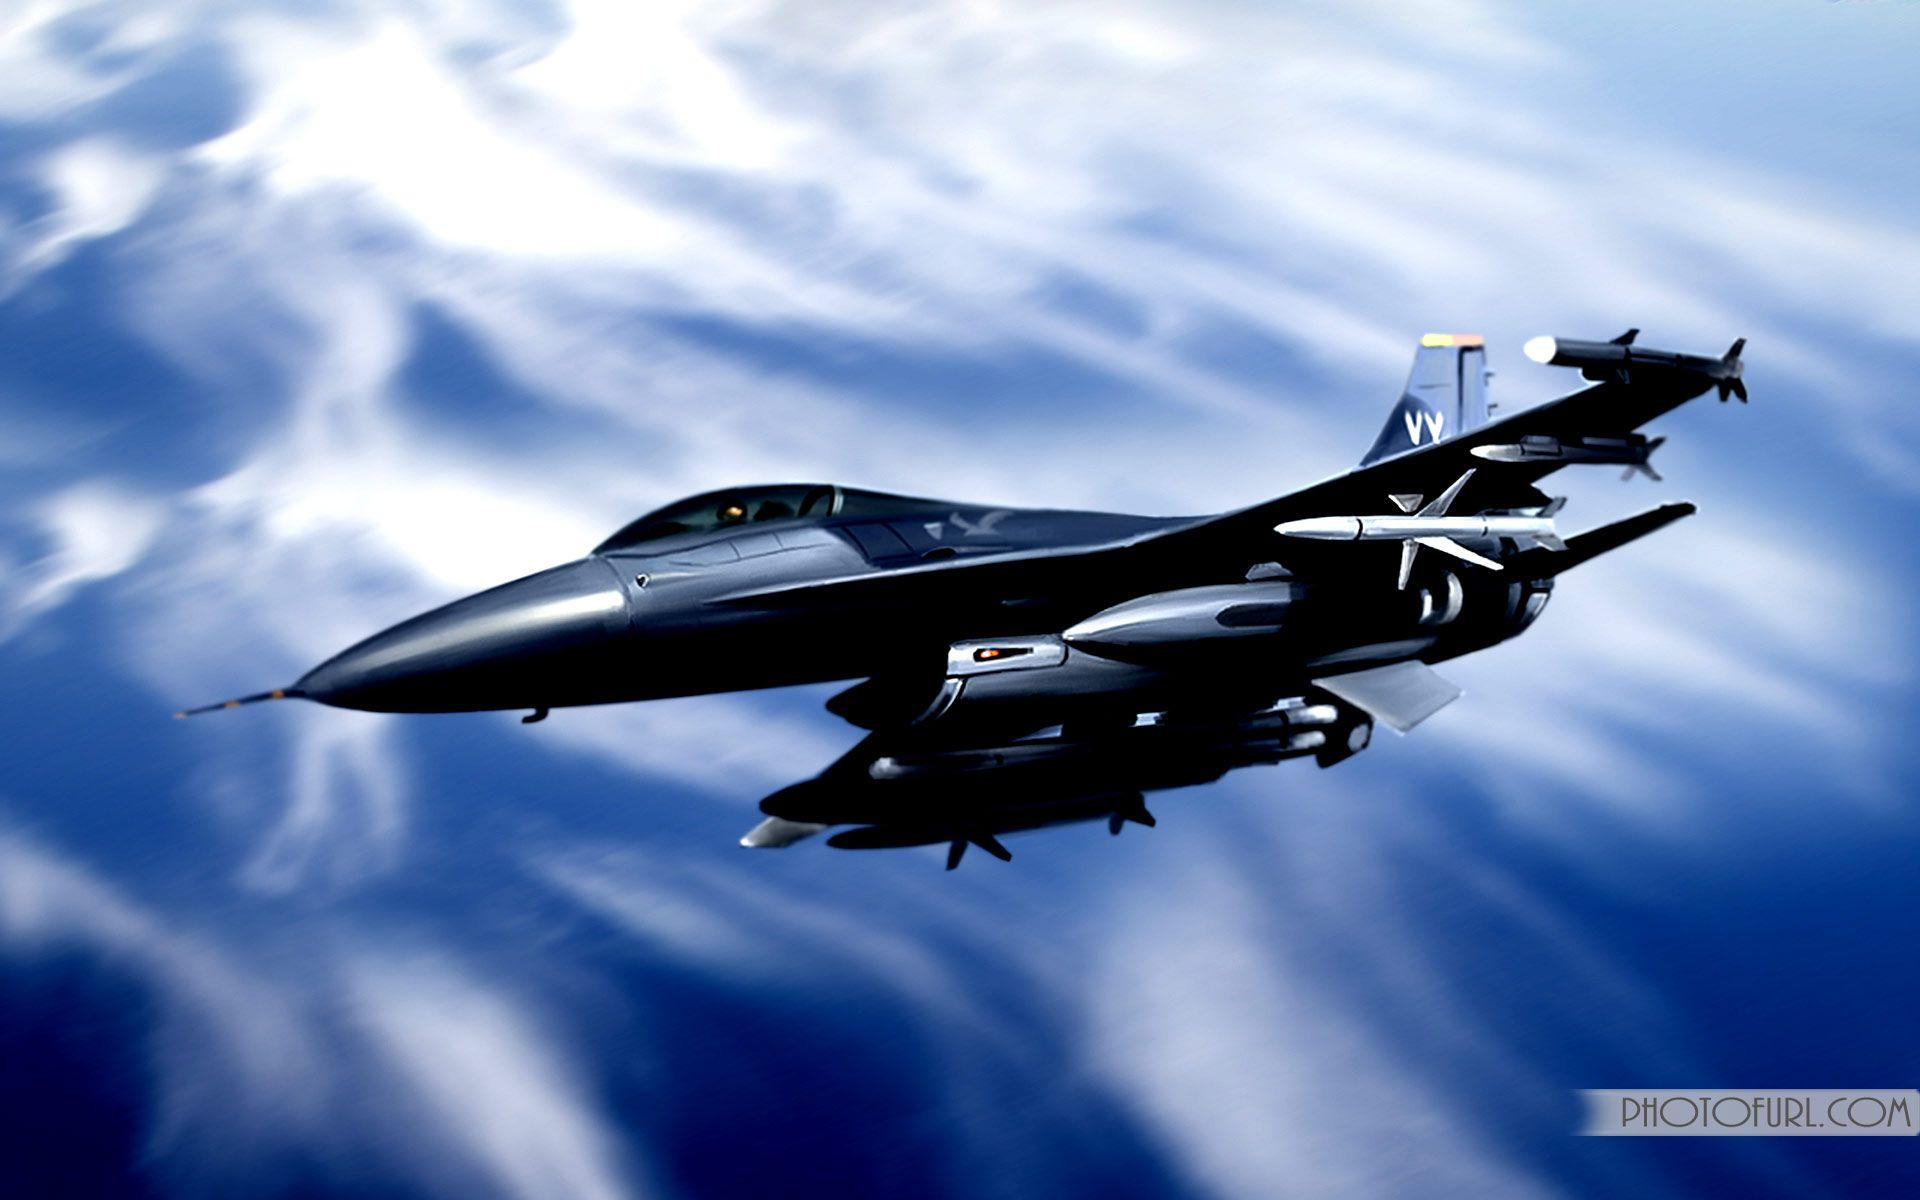 Fighter Plane Wallpapers - Wallpaper Cave